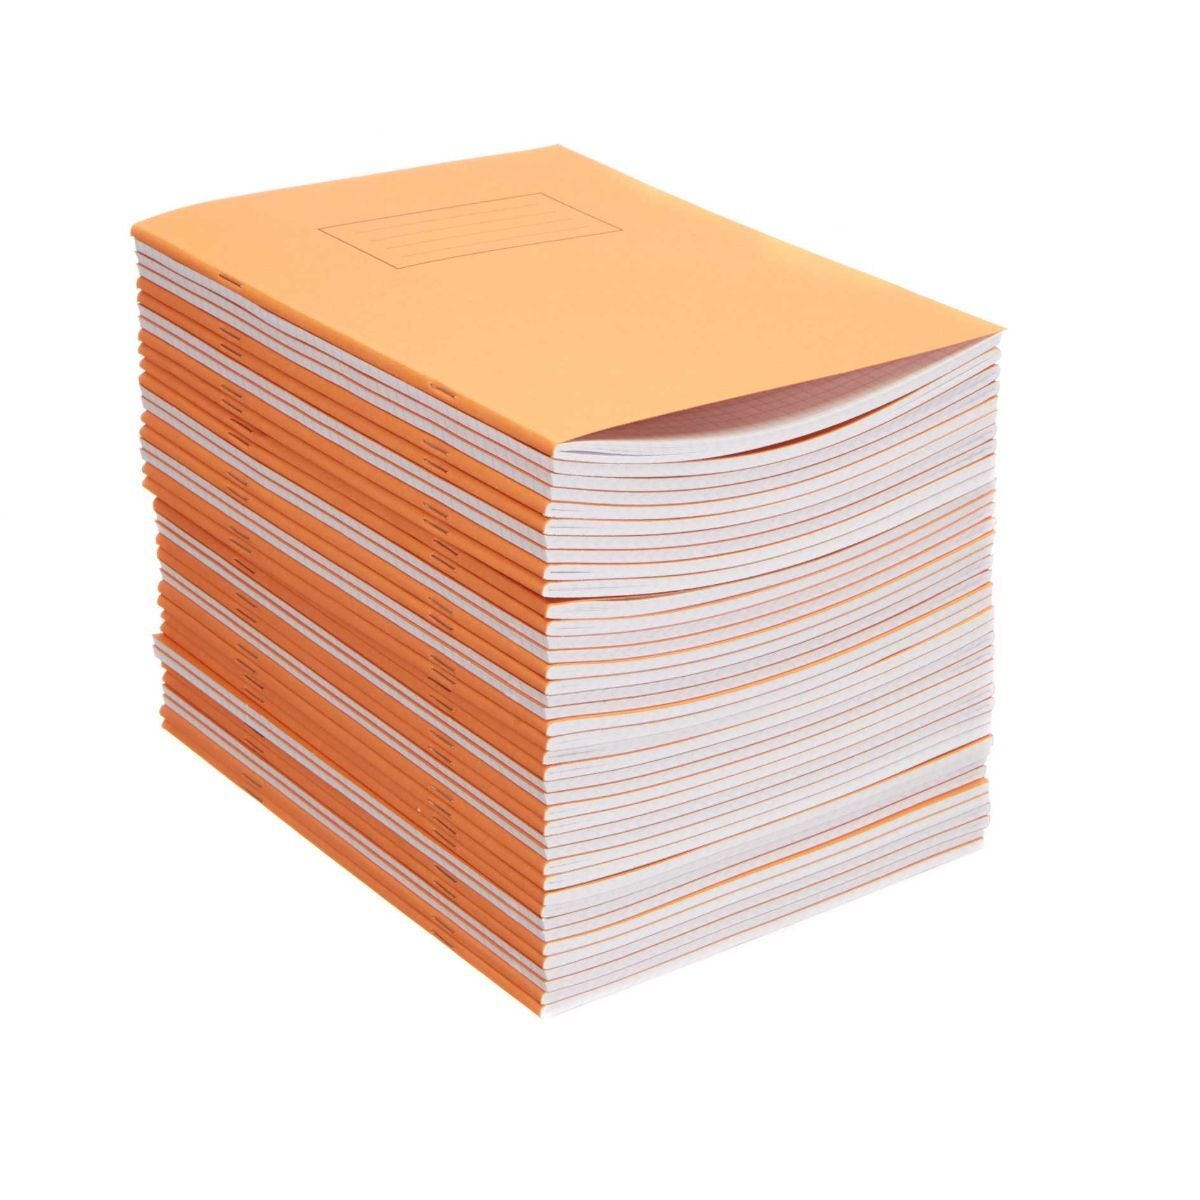 Silvine Exercise Book 9 Inch x 7 Inch Squared 75gsm Pack of 40 Orange